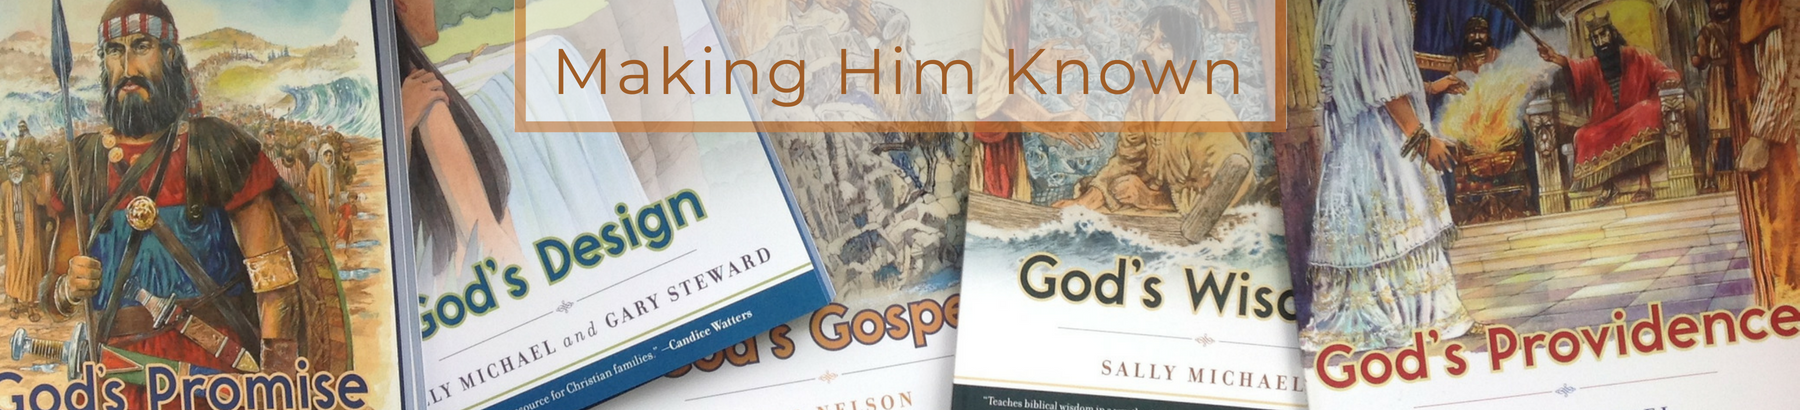 The Making Him Known series is great for daily devotionals with children